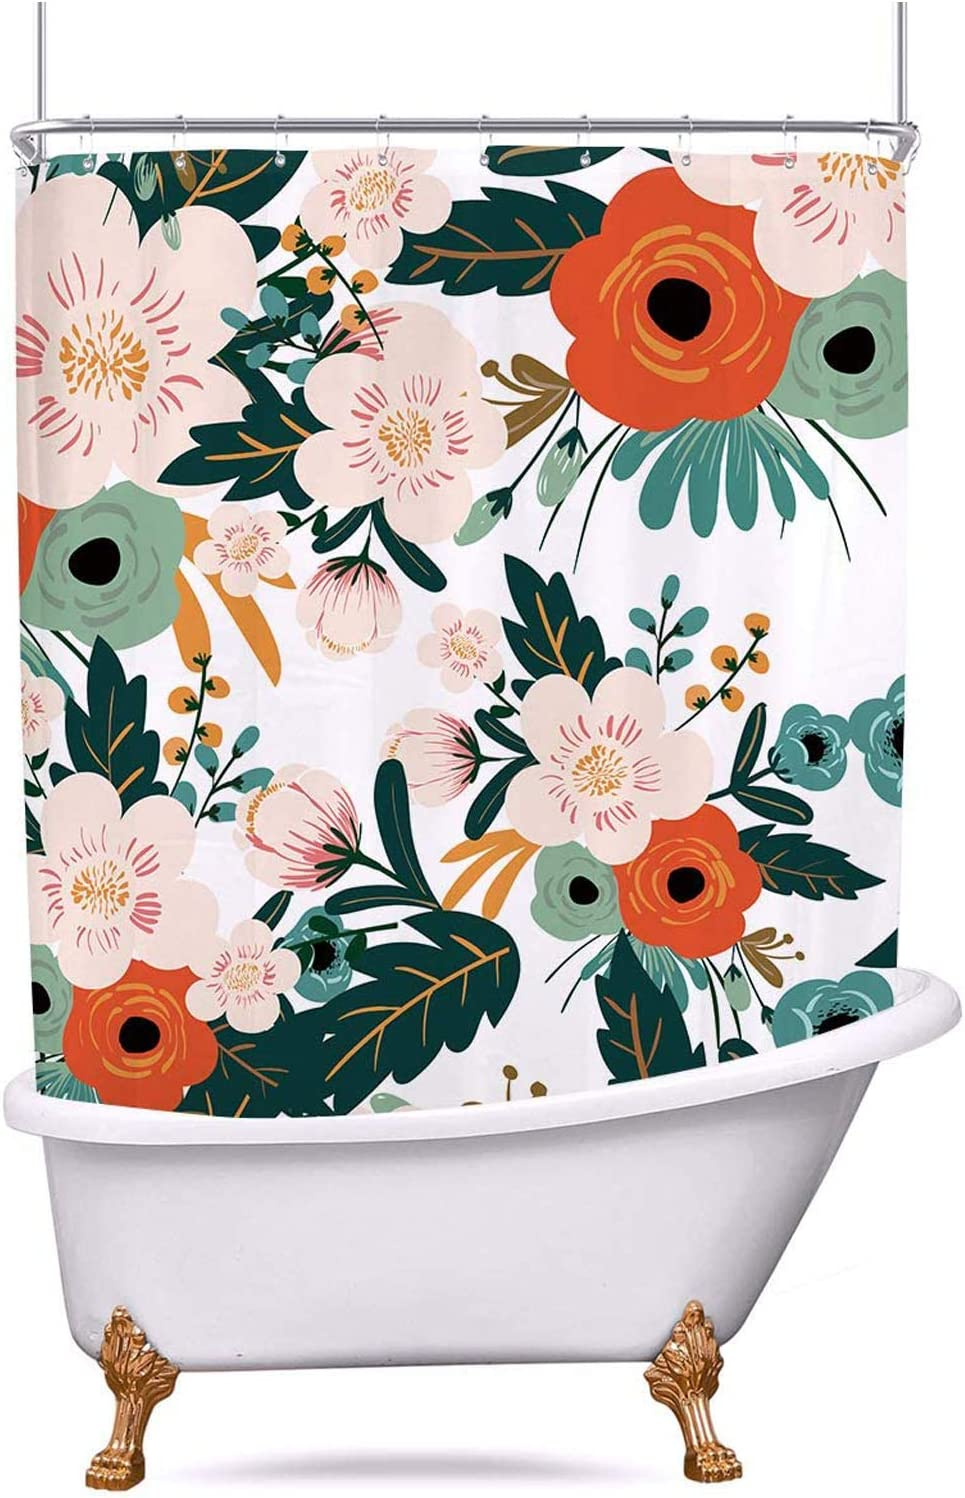 Riyidecor Spring Flower Clawfoot Tub Shower Curtain 180Wx70H Inch Set Season Floral Green Bathroom Decor Fabric Panel Polyester Waterproof All Wrap Around Extra Wide 32 Pack Metal Shower Hooks